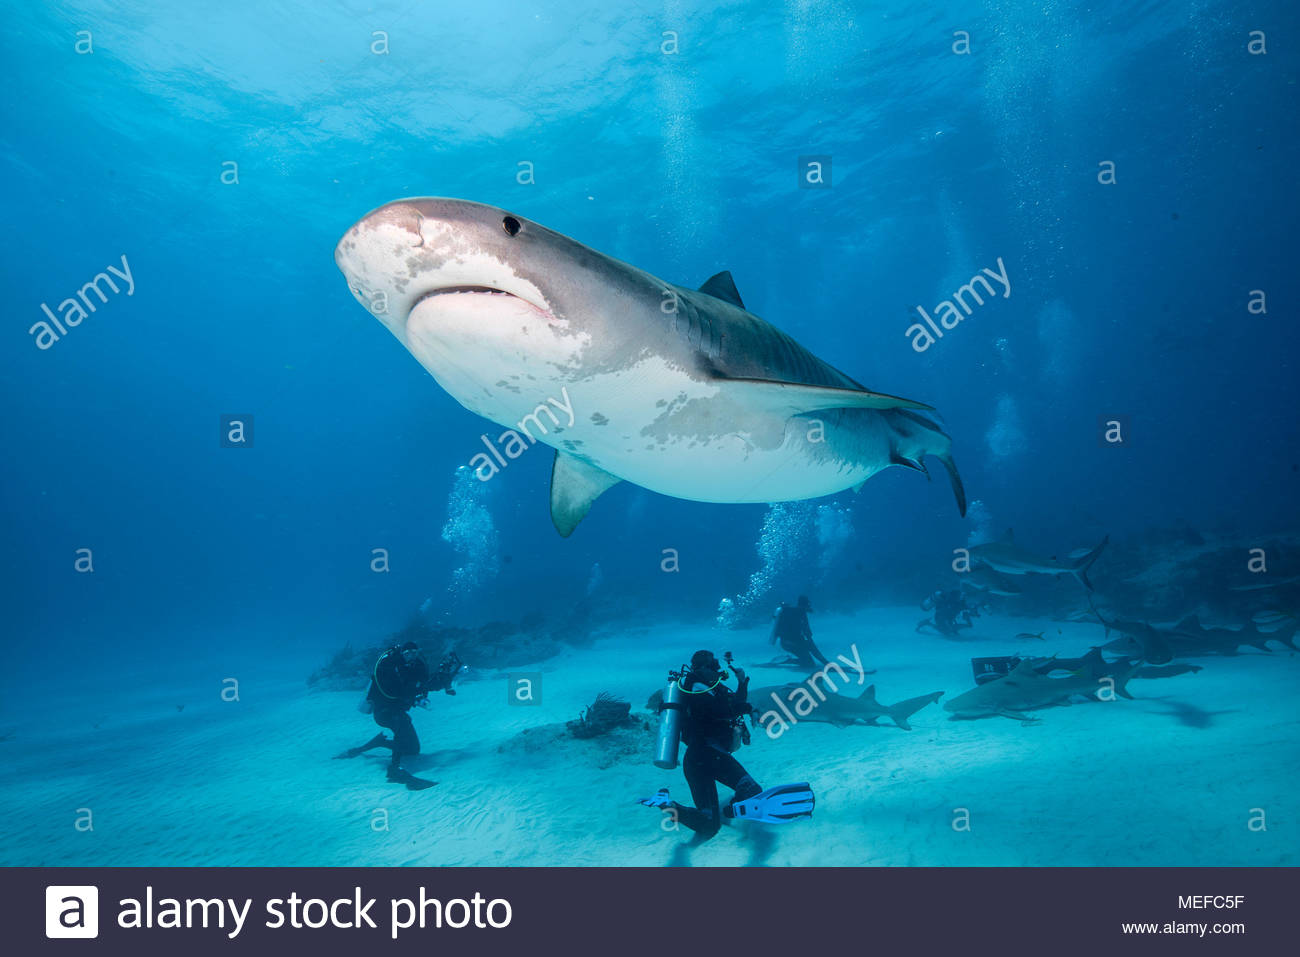 Taucher und Tigerhai (Galeocerdo cuvier), Bahama Banks, Bahamas | Scuba diver and Tiger shark (Galeocerdo cuvier) Bahama Banks, Bahamas Stock Photo